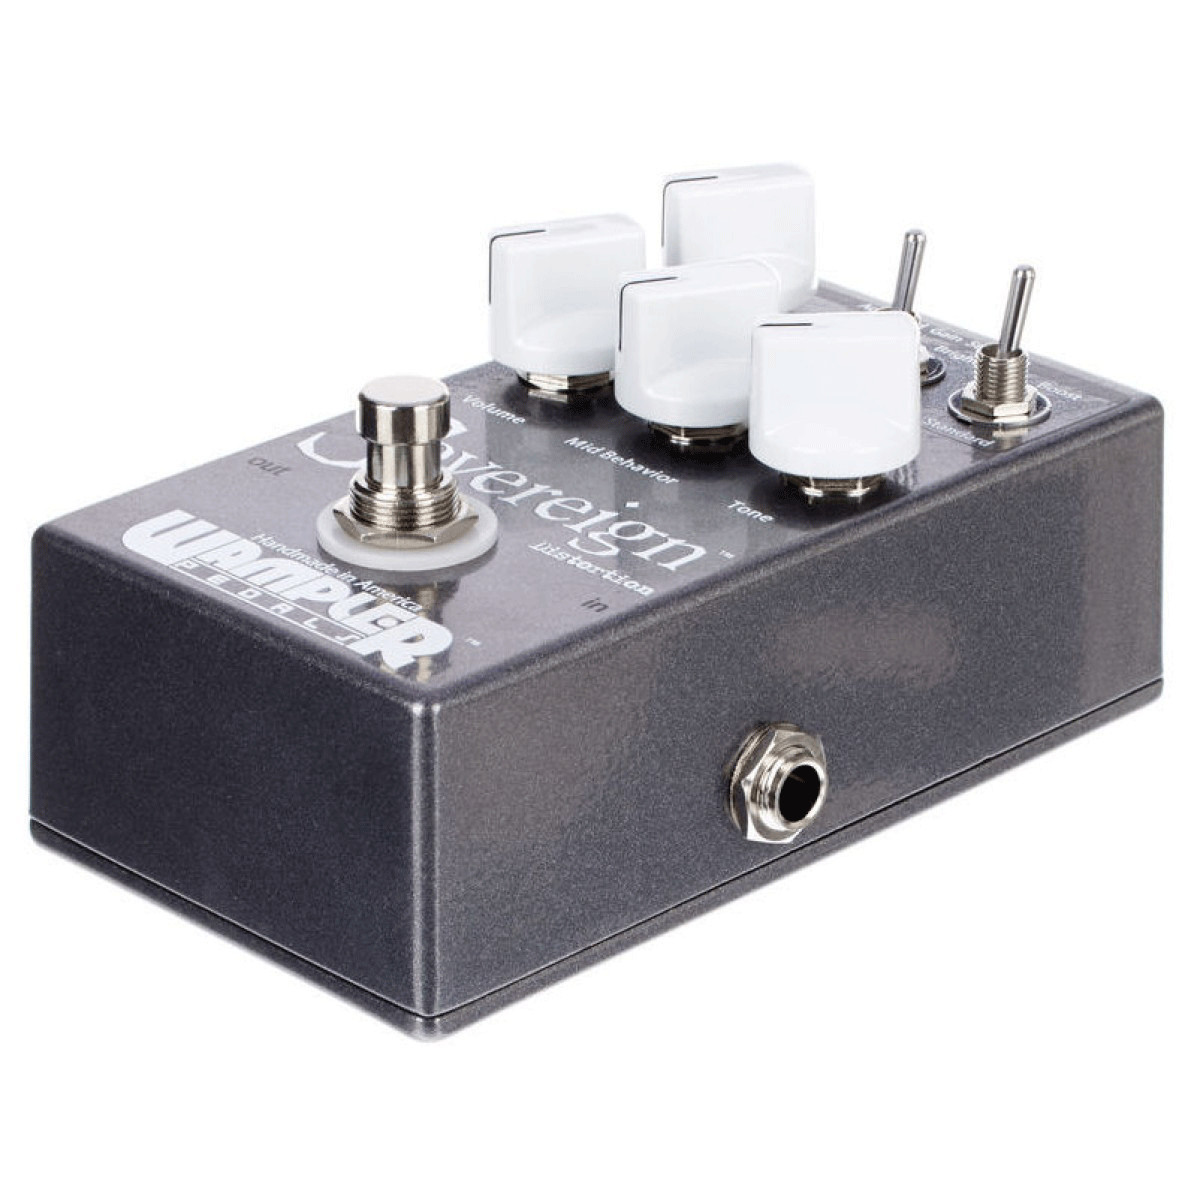 Wampler Sovereign Distortion Pedal at Gear4music.com